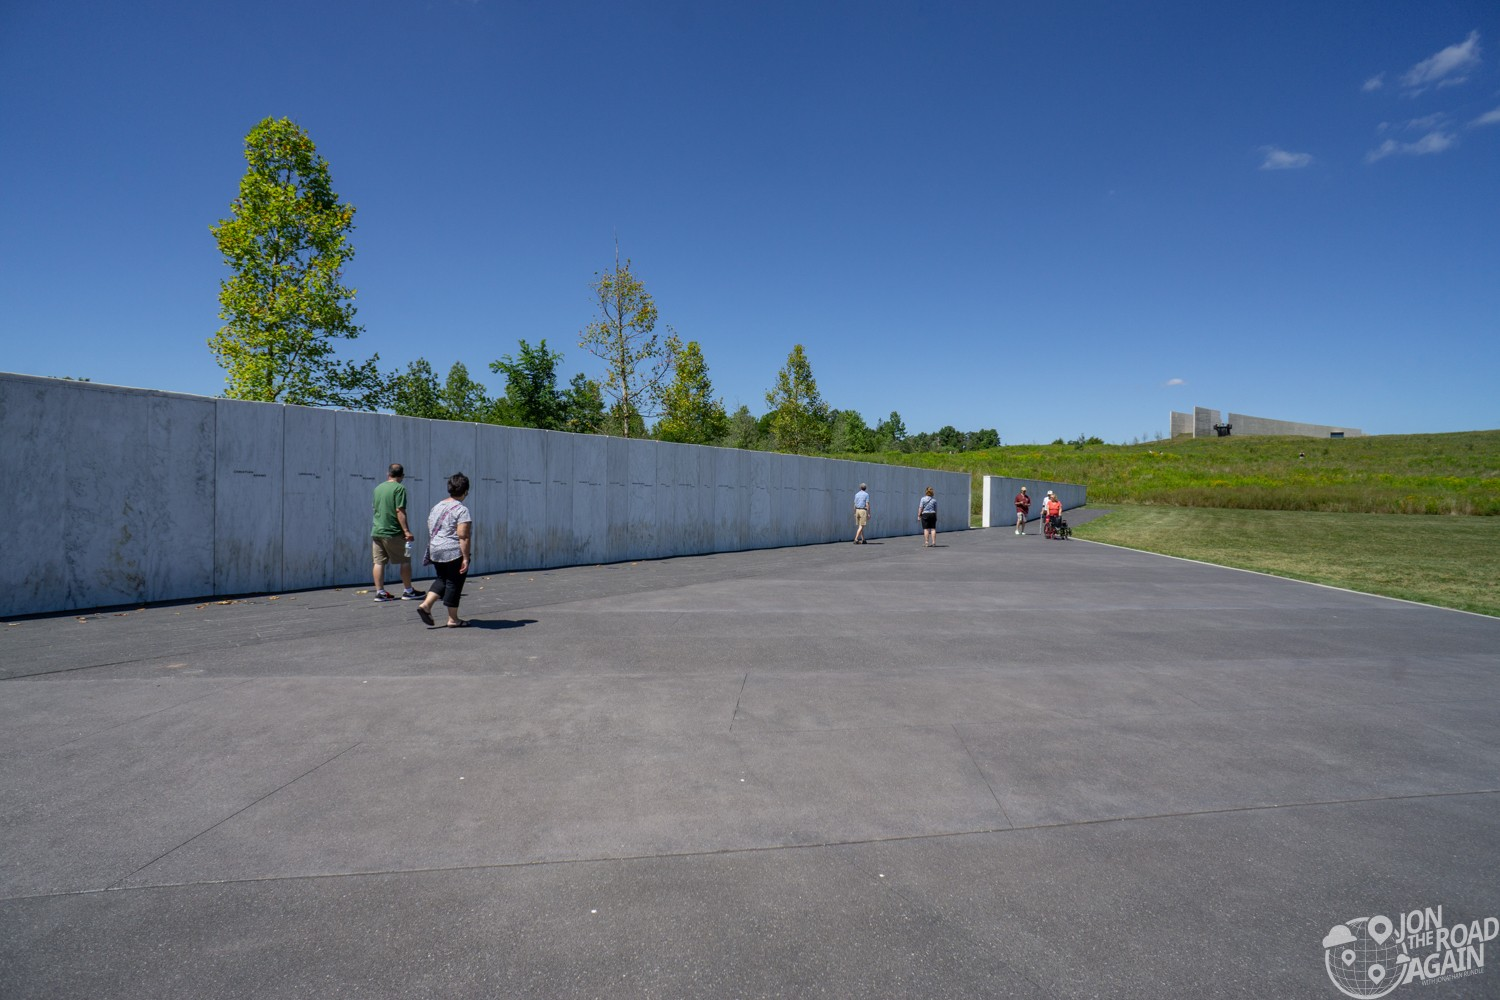 Flight 93 wall of names